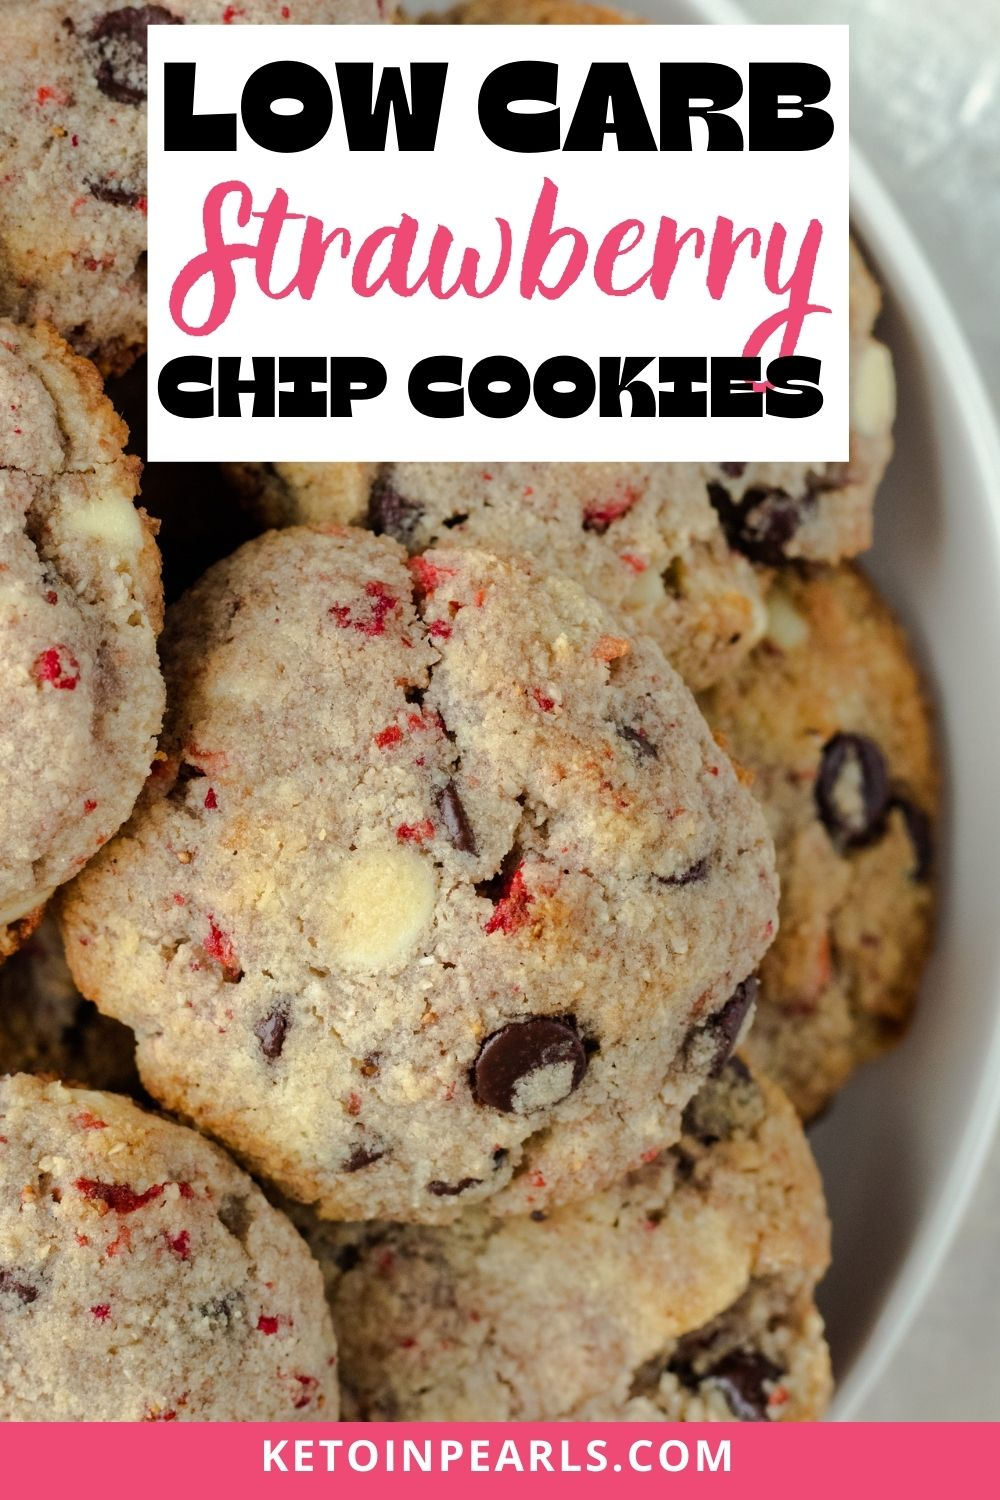 Sugar free dark chocolate, white chocolate, and bits of strawberries make these low carb chocolate chip cookies extra yummy! This keto cookie recipe can be made in one bowl too. Only 2.3 net carbs per cookie.